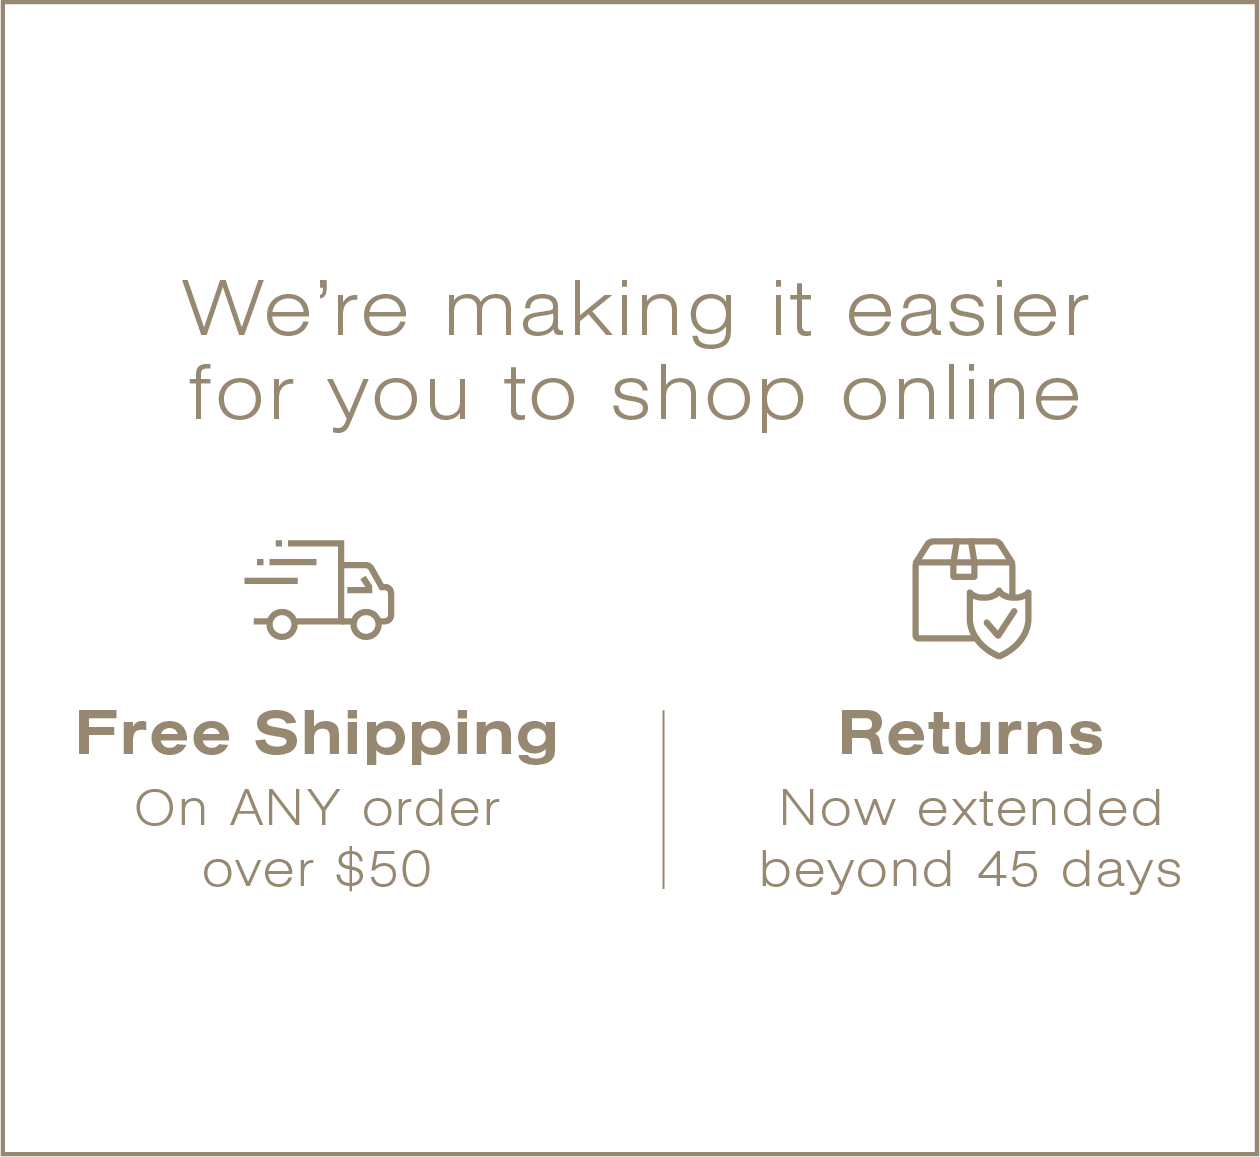 We're making it easier for you to shop online. Free shipping on any order over $50. Returns now extended beyond 45 days.